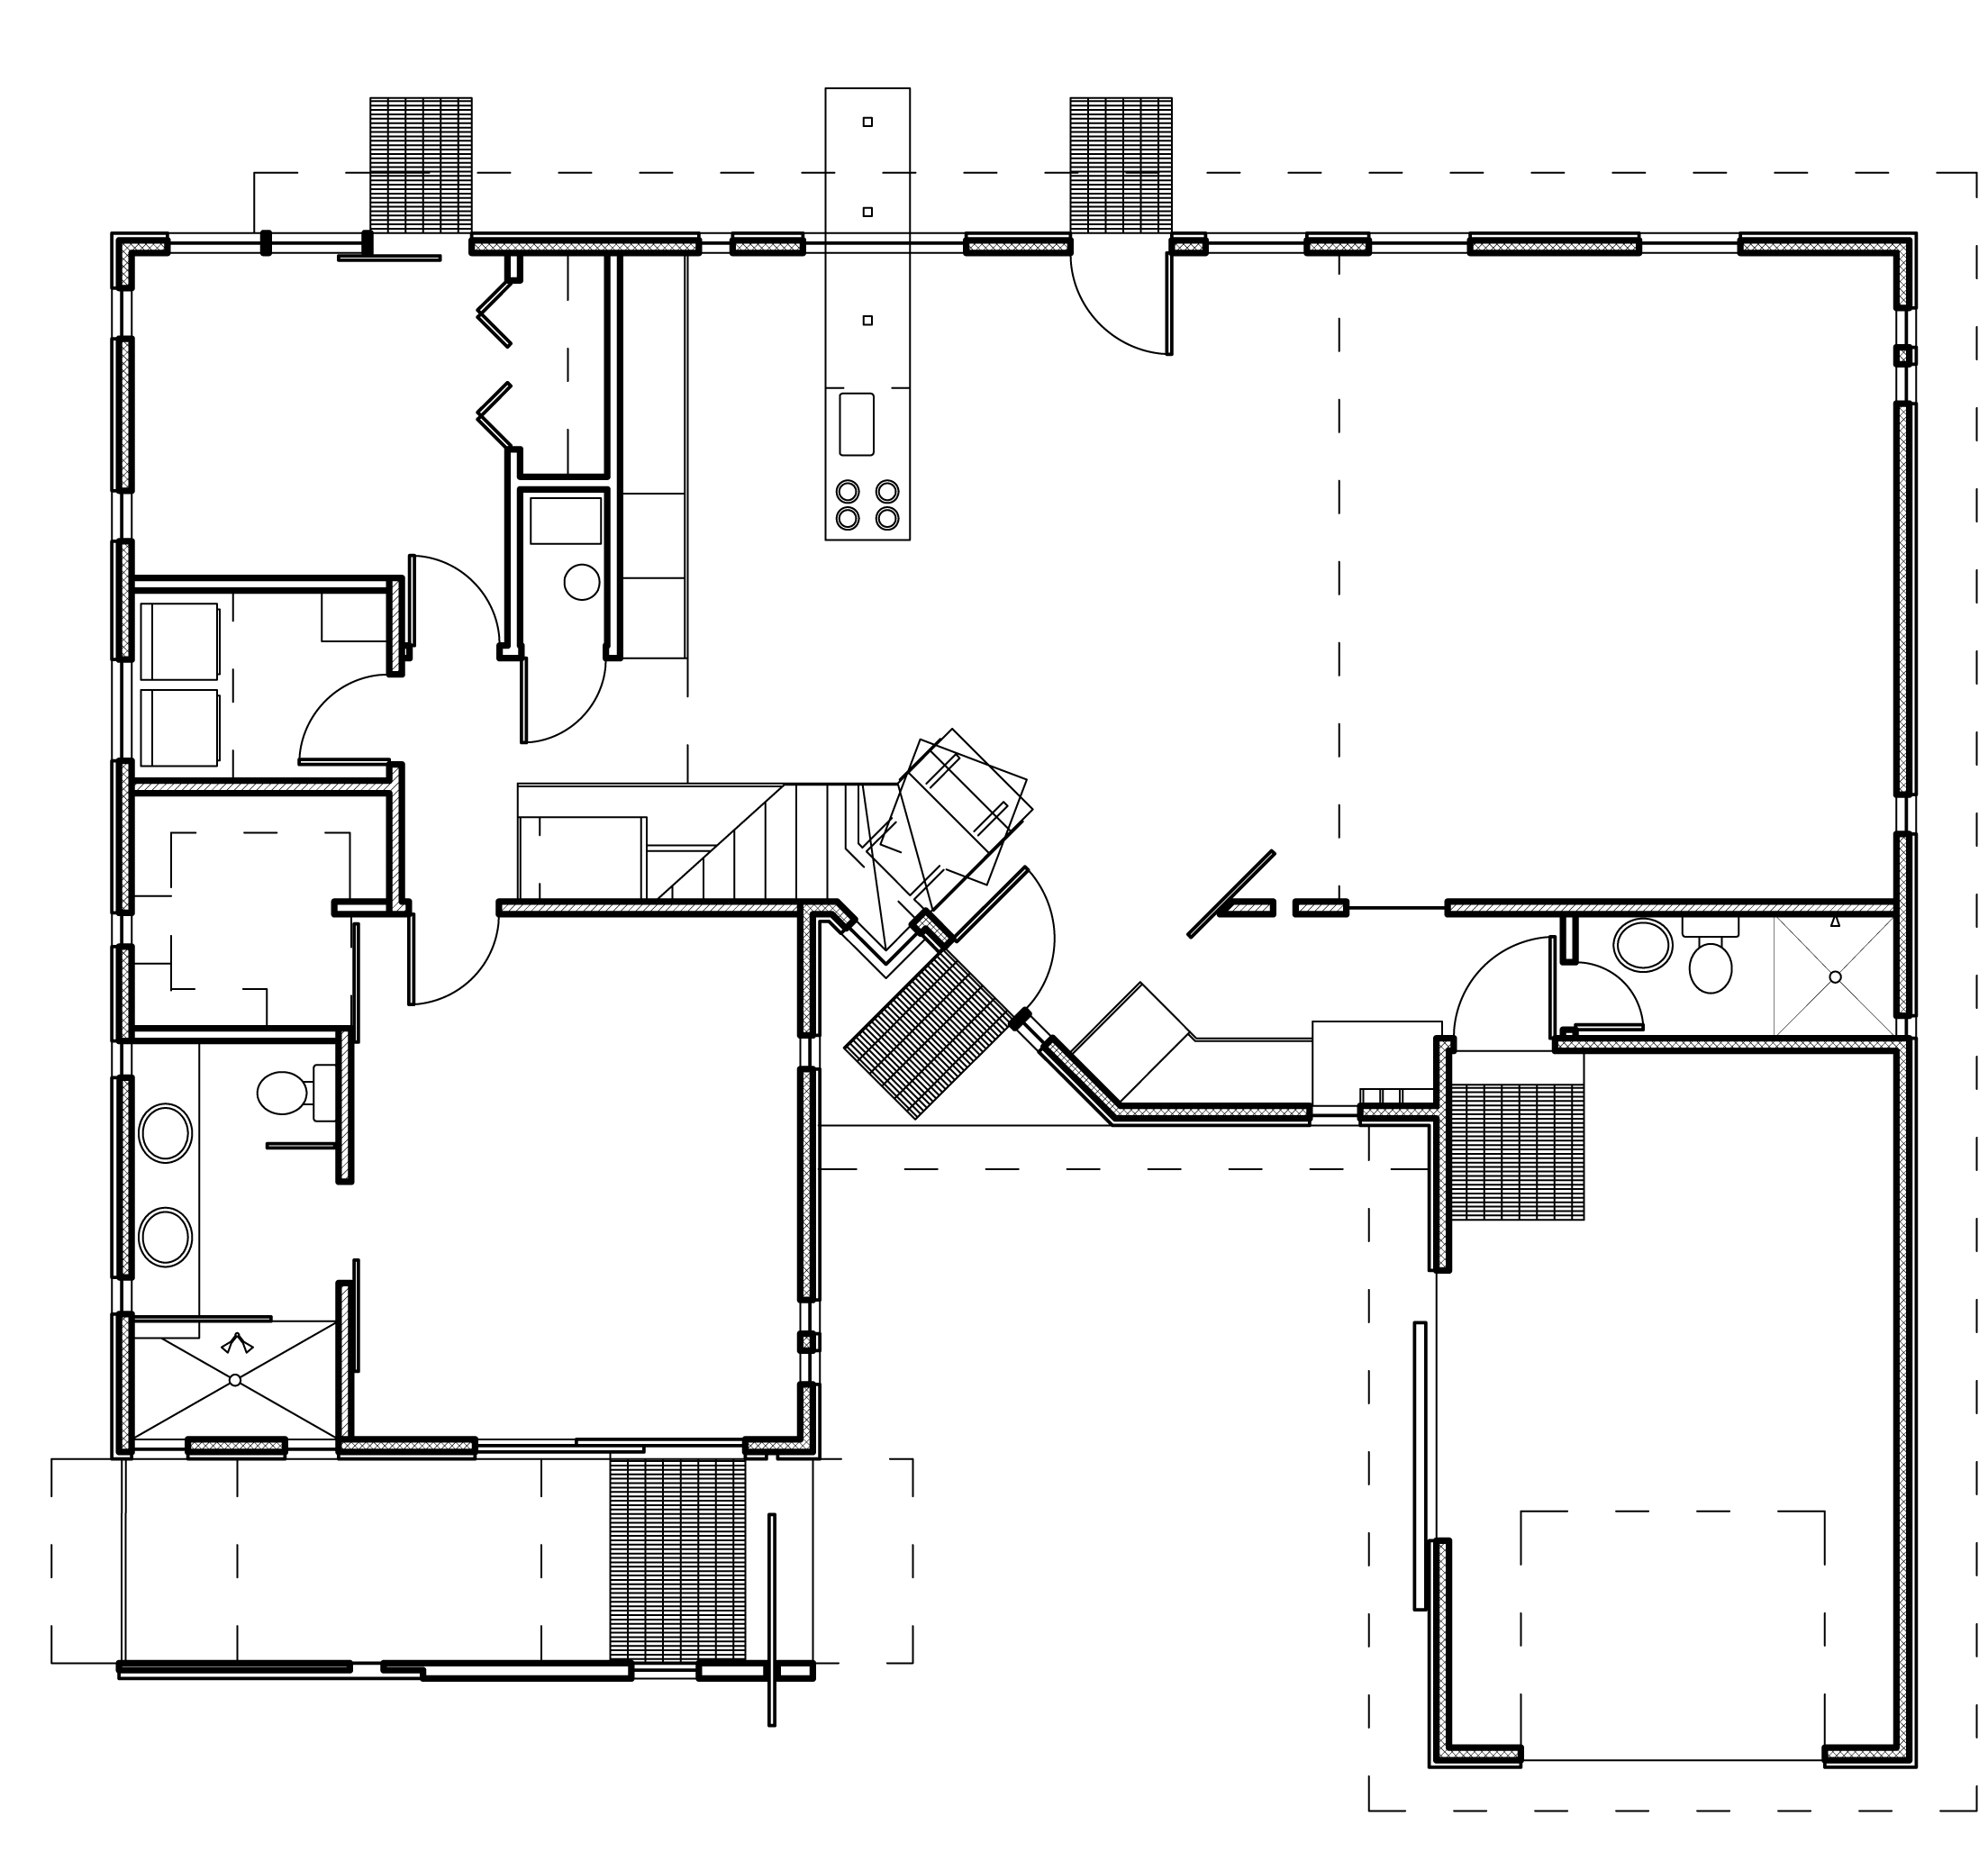 Modern house plans contemporary home designs floor plan 03 Contemporary open floor plans